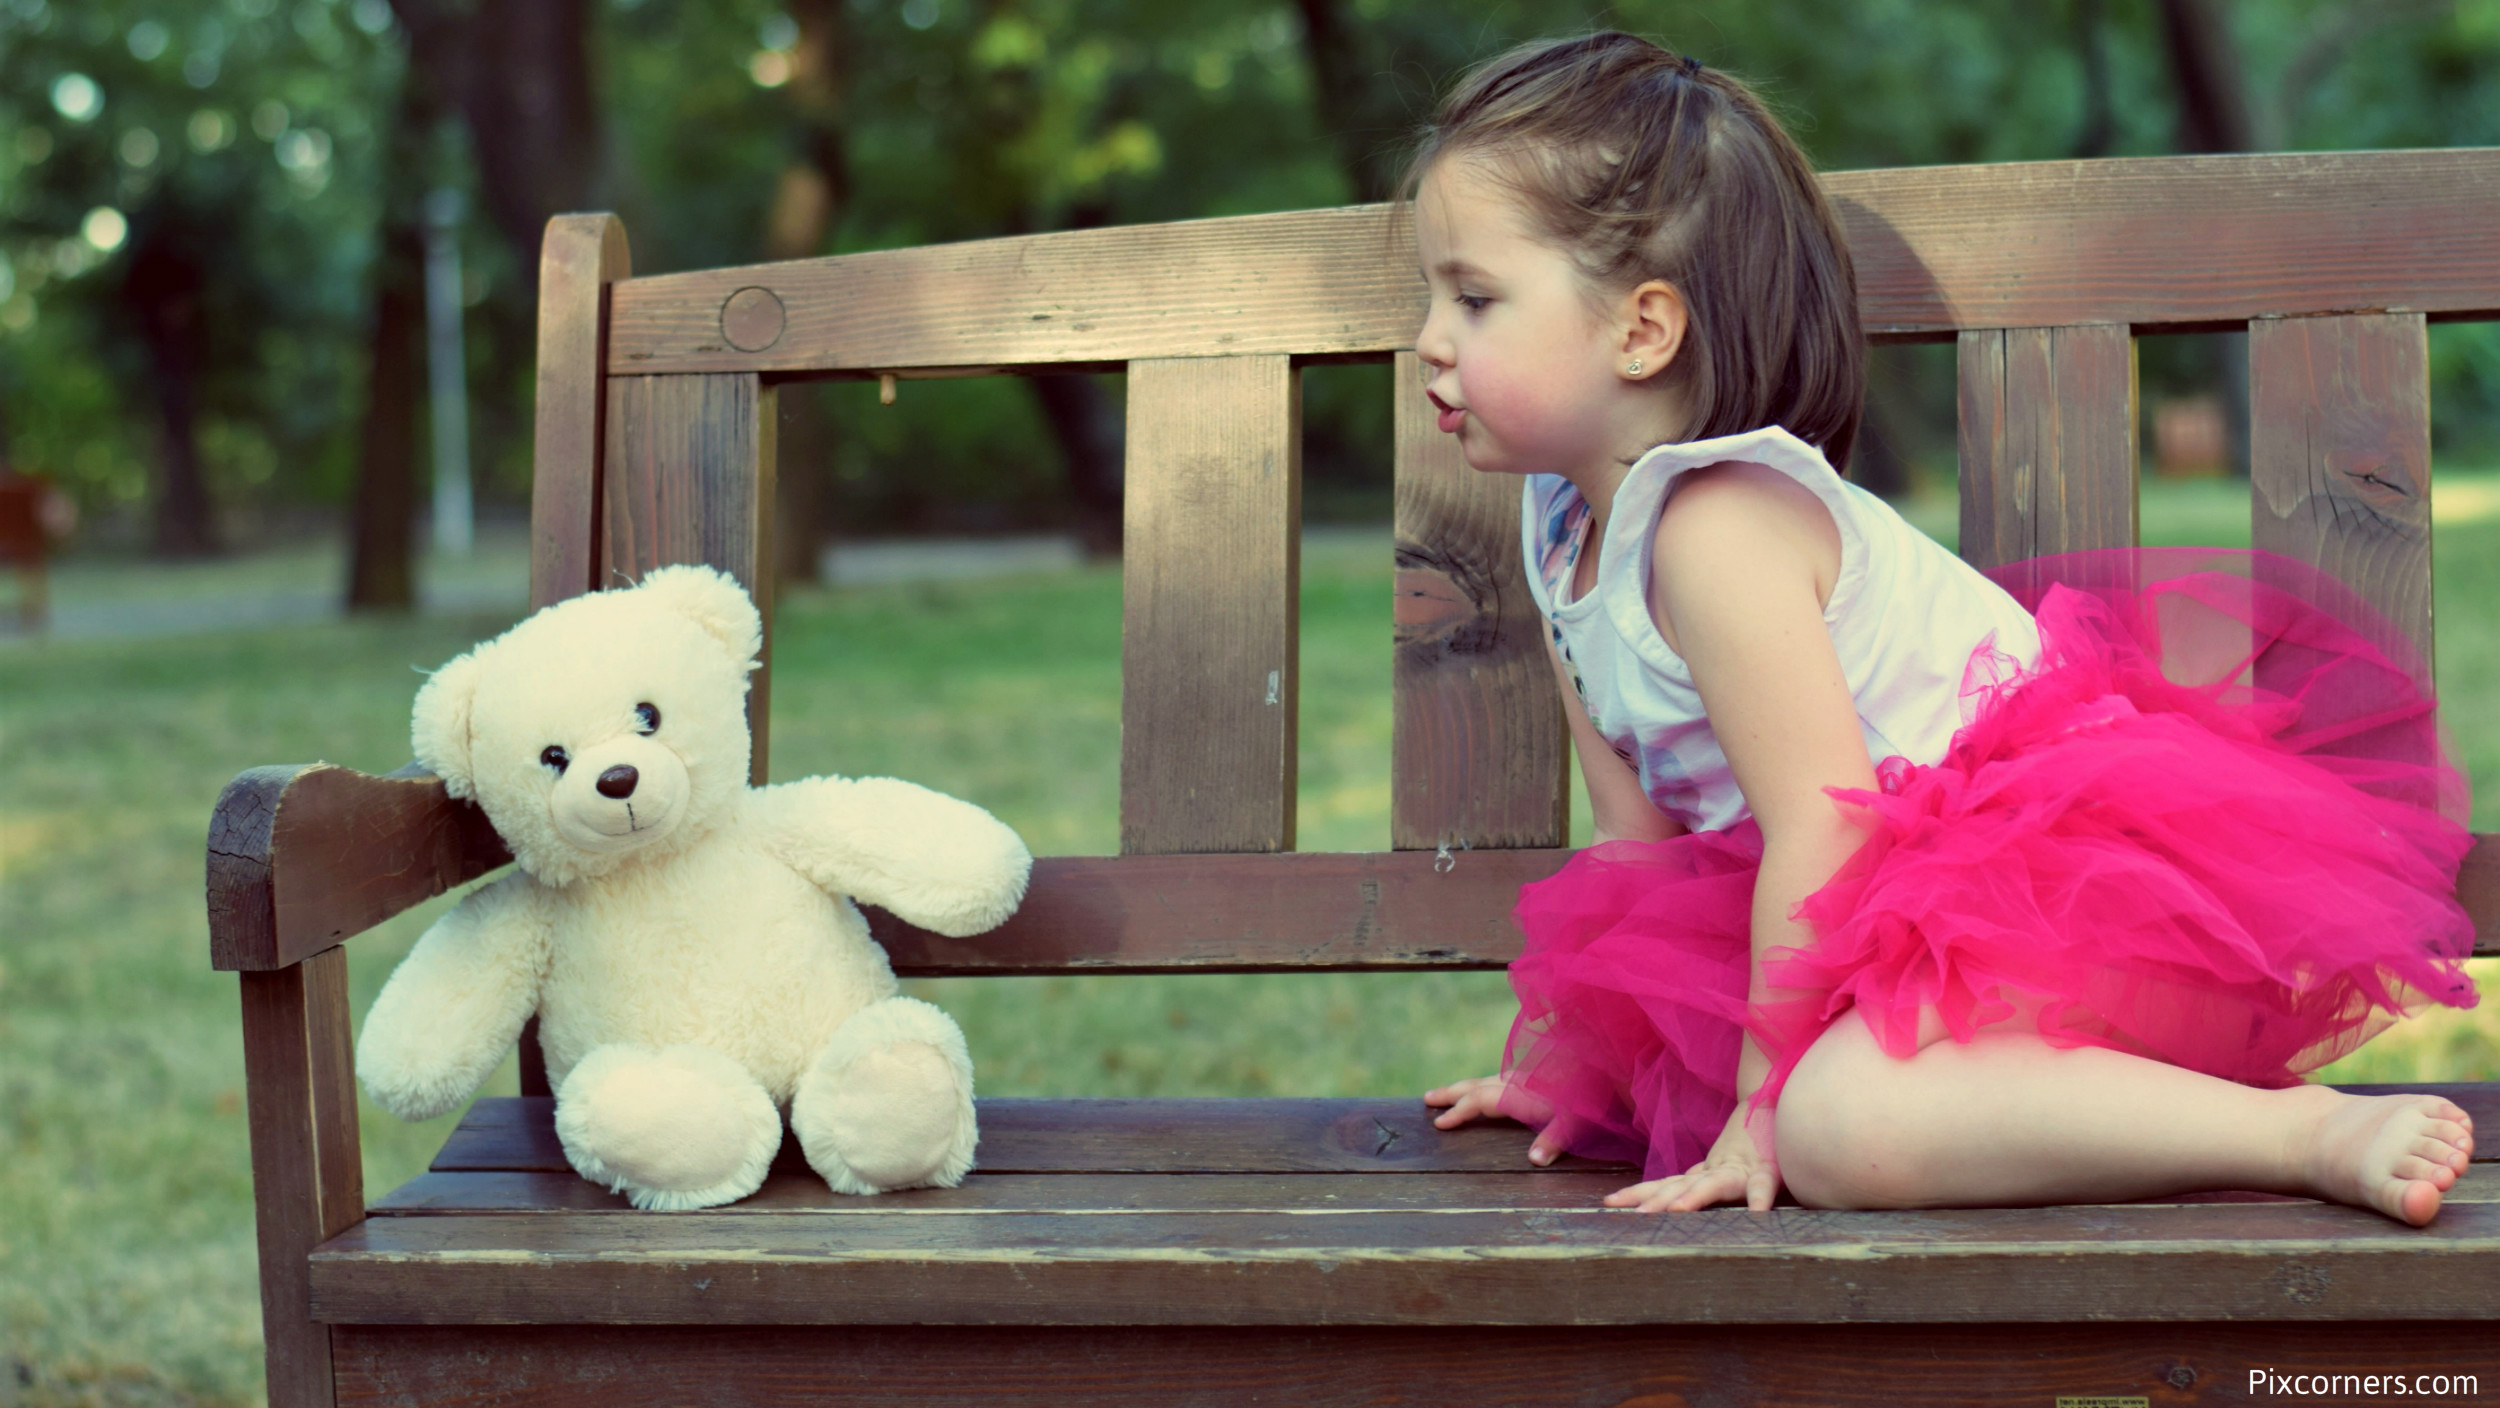 Teddy bear wallpaper 58 images - Cute teddy bear pics hd download ...